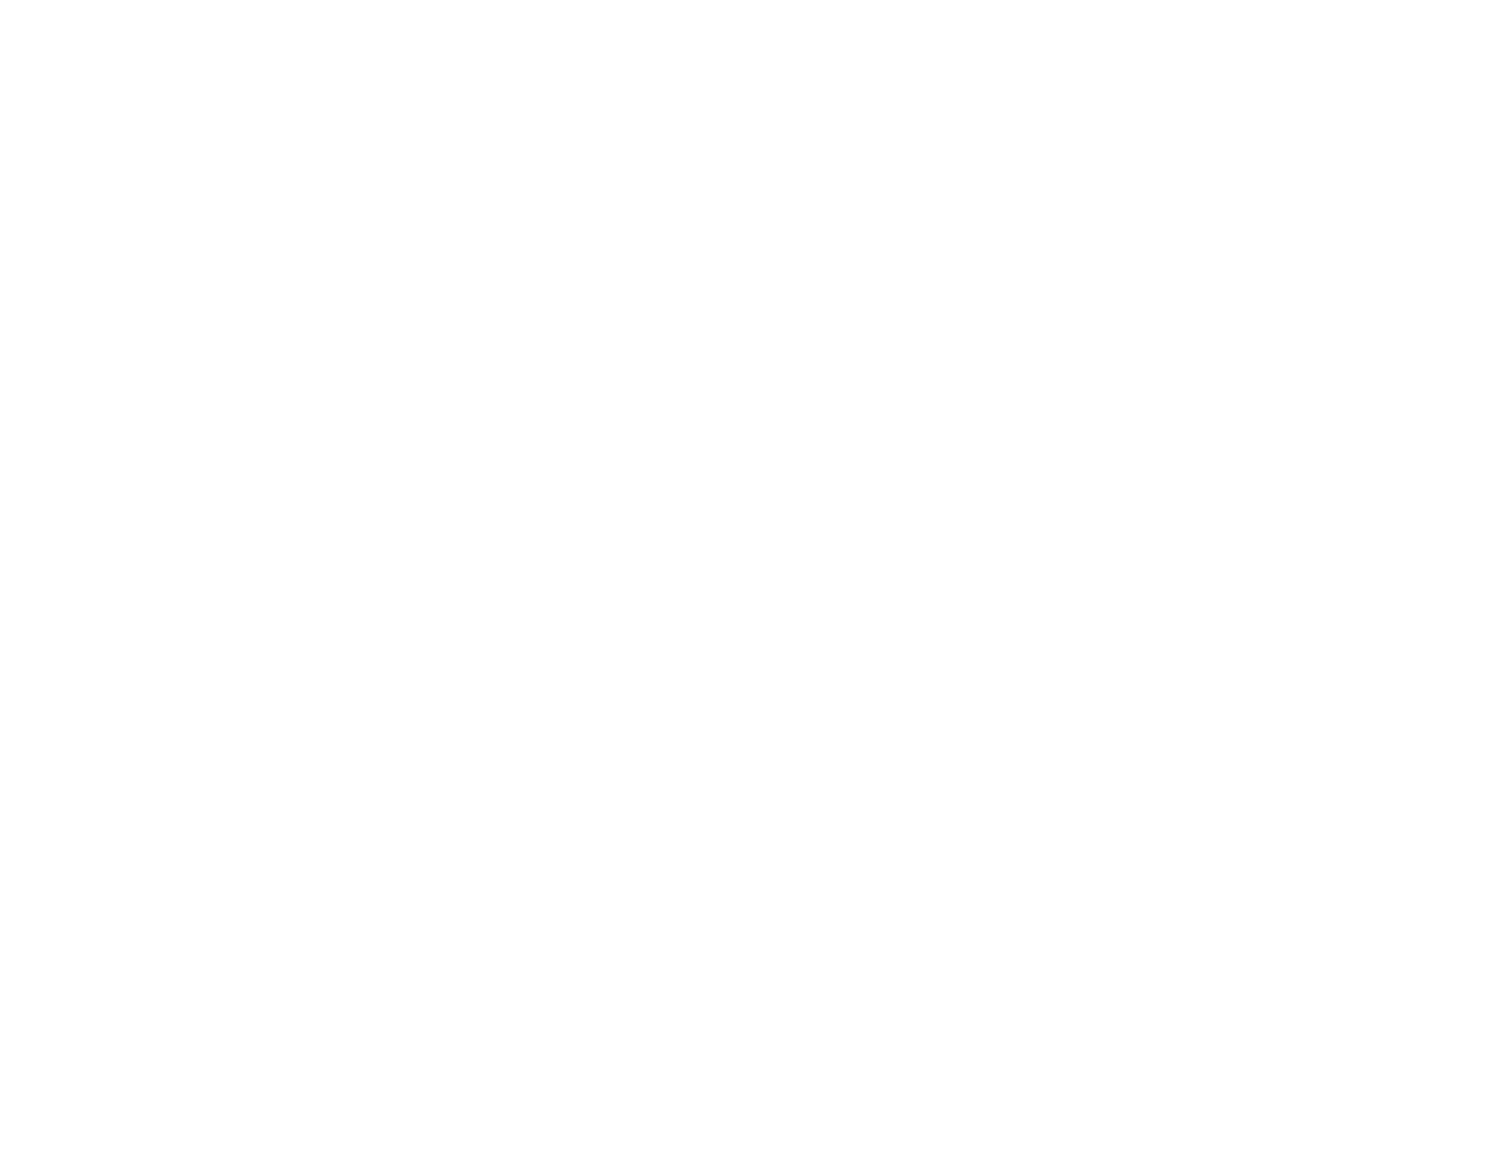 Assured Information Solutions